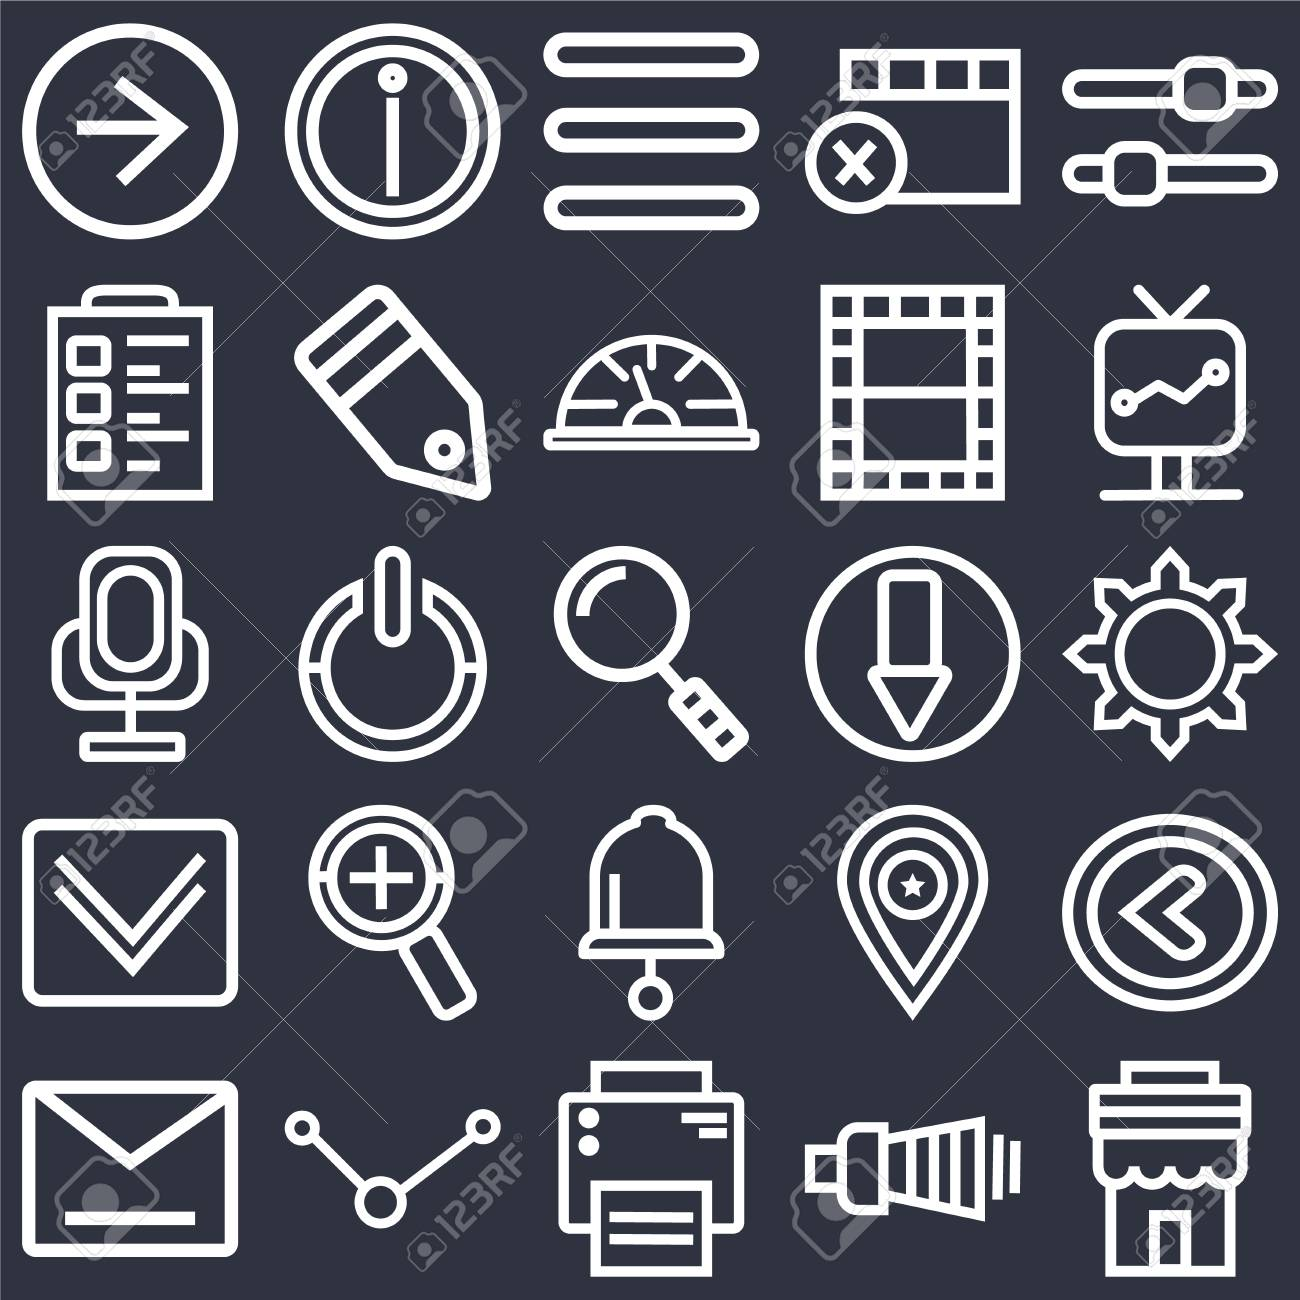 Set Of 25 icons such as Store, Volume, Printer, Share, Envelope,